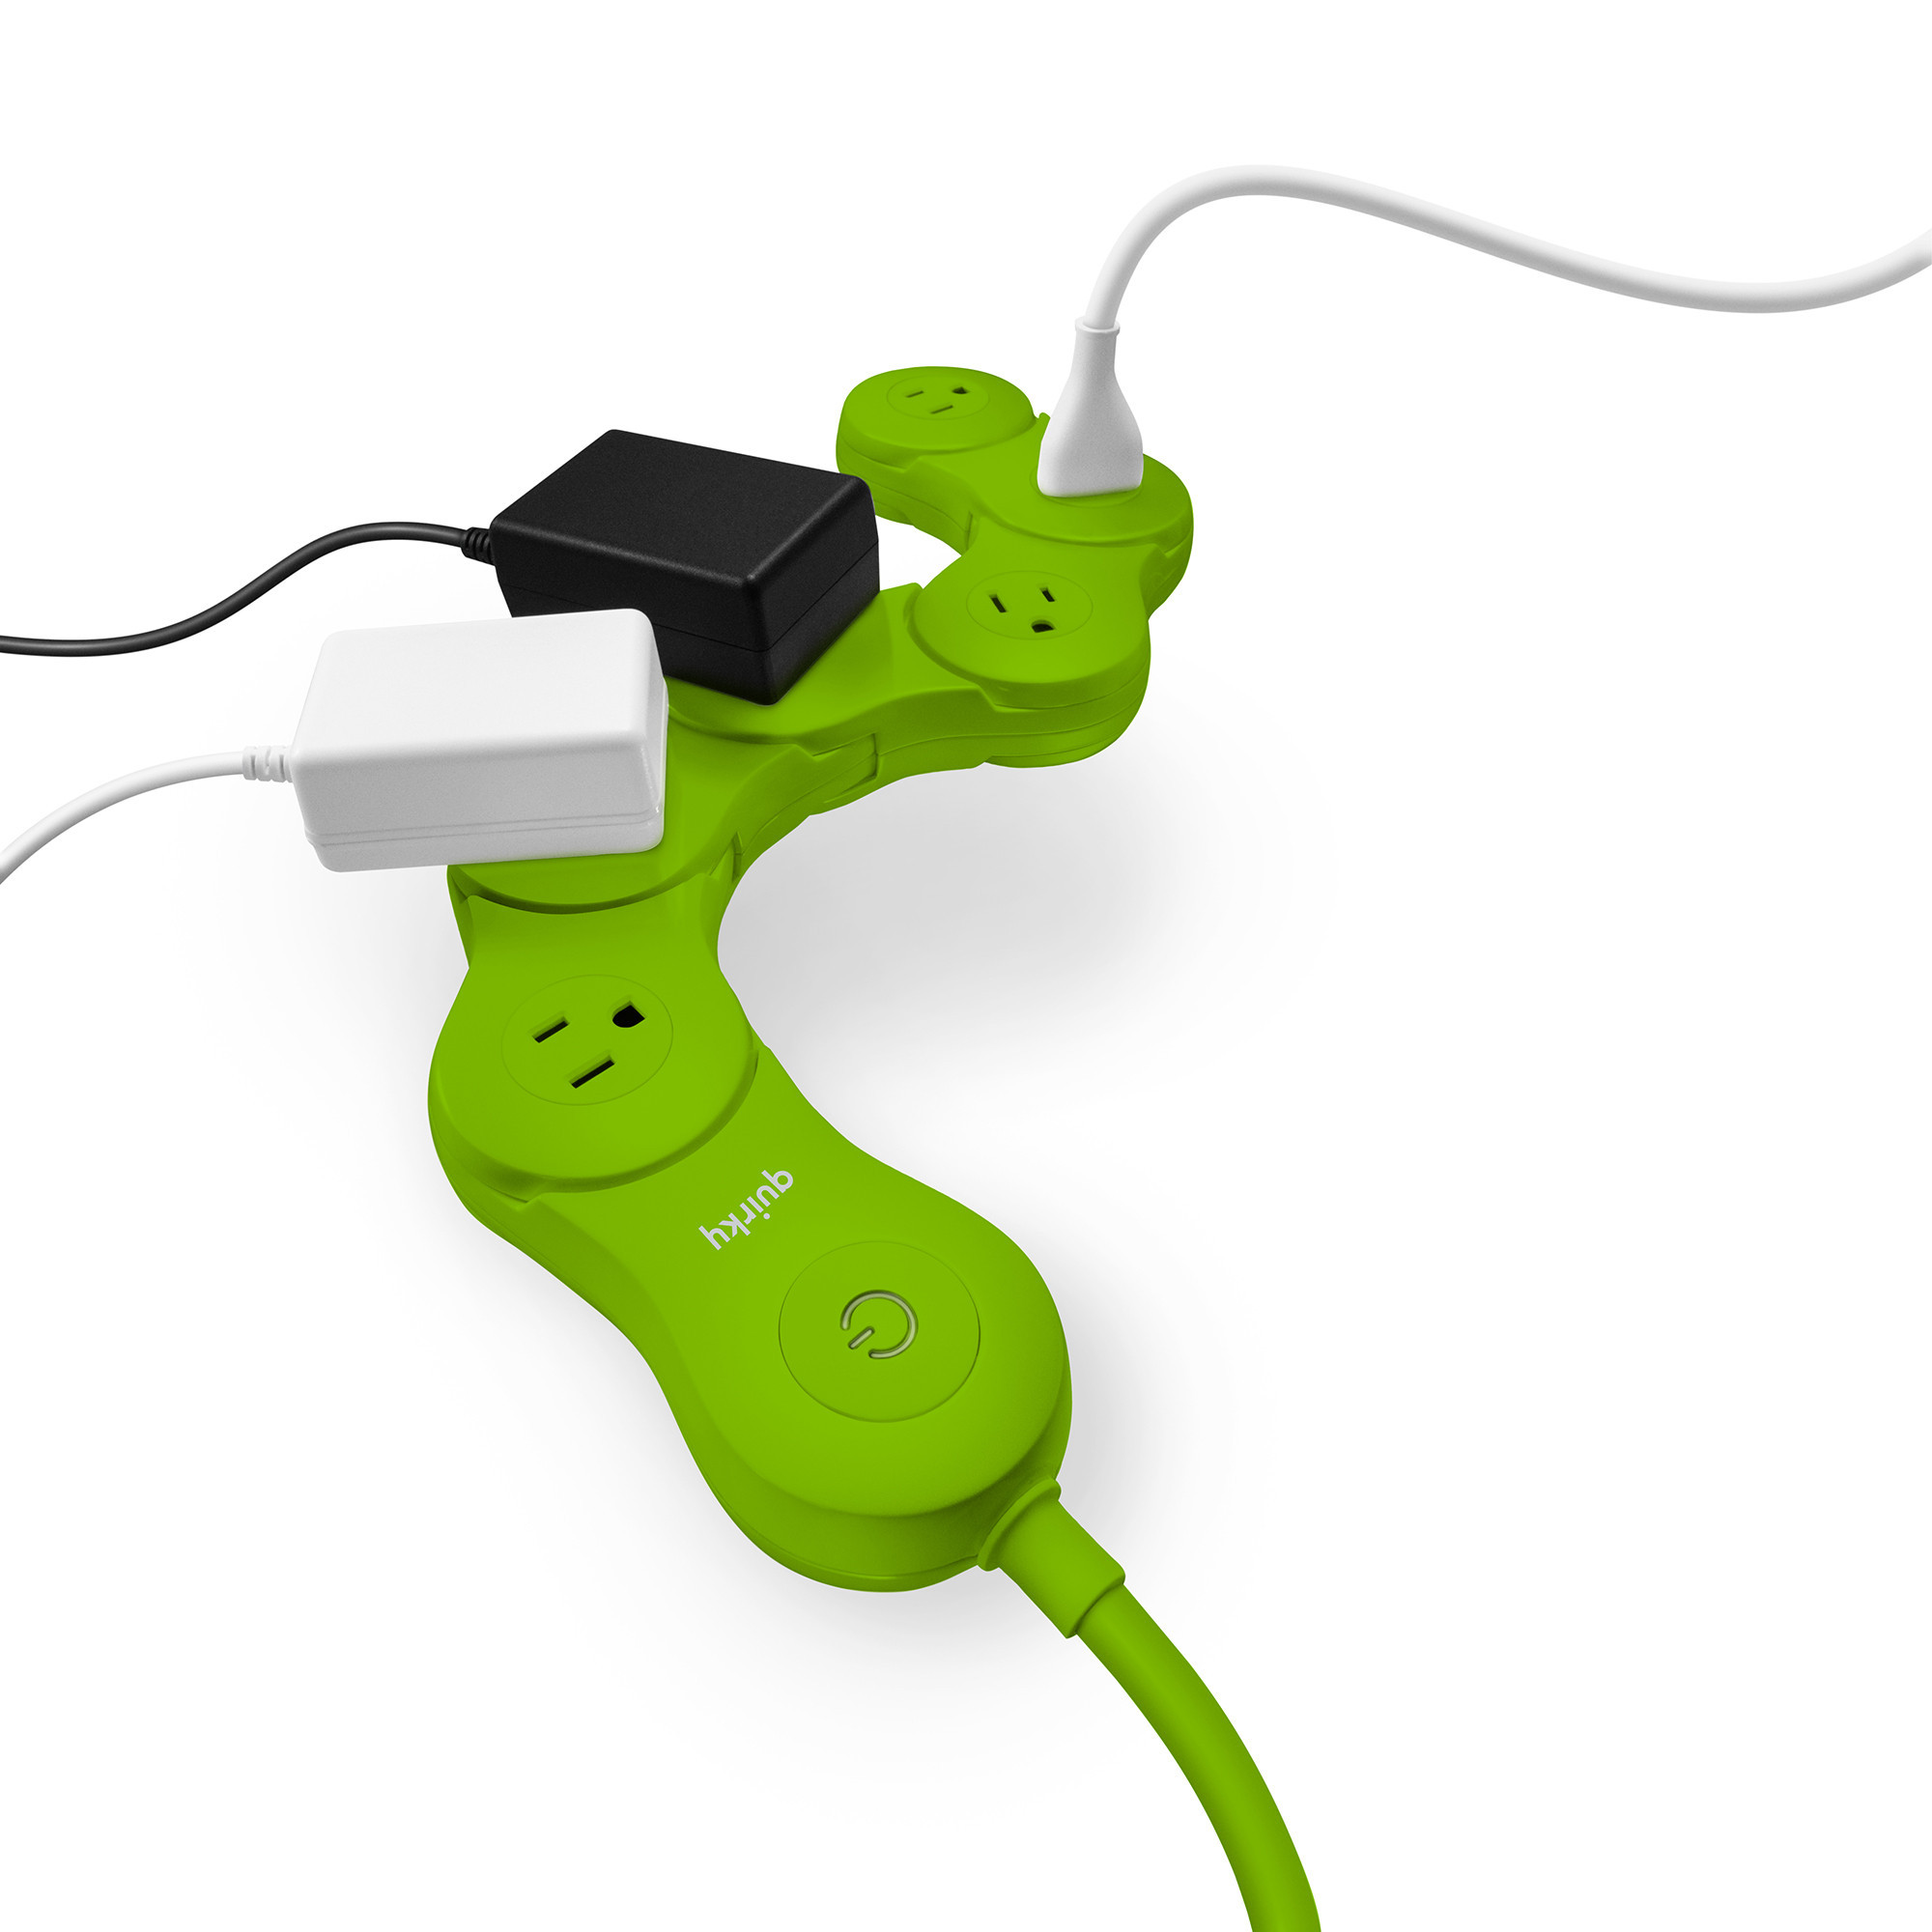 Quirky Pivot Power - Flexible 6 outlet surge protector - LIME GREEN